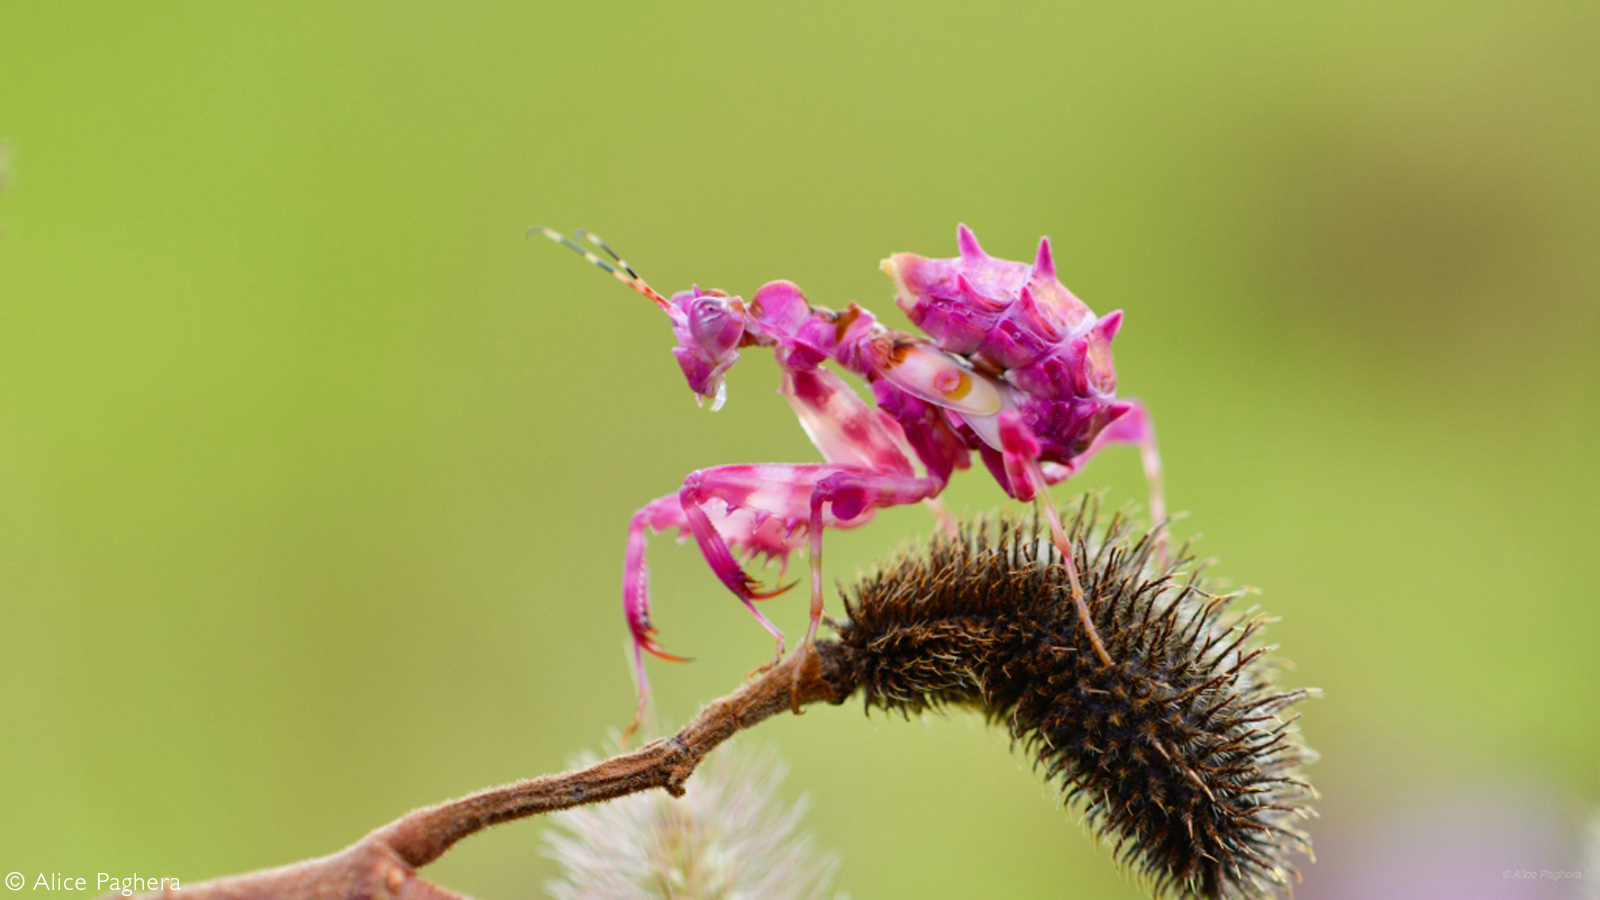 A spiny flower mantis. Odzala-Kokoua National Park, Republic of the Congo © Alice Paghera